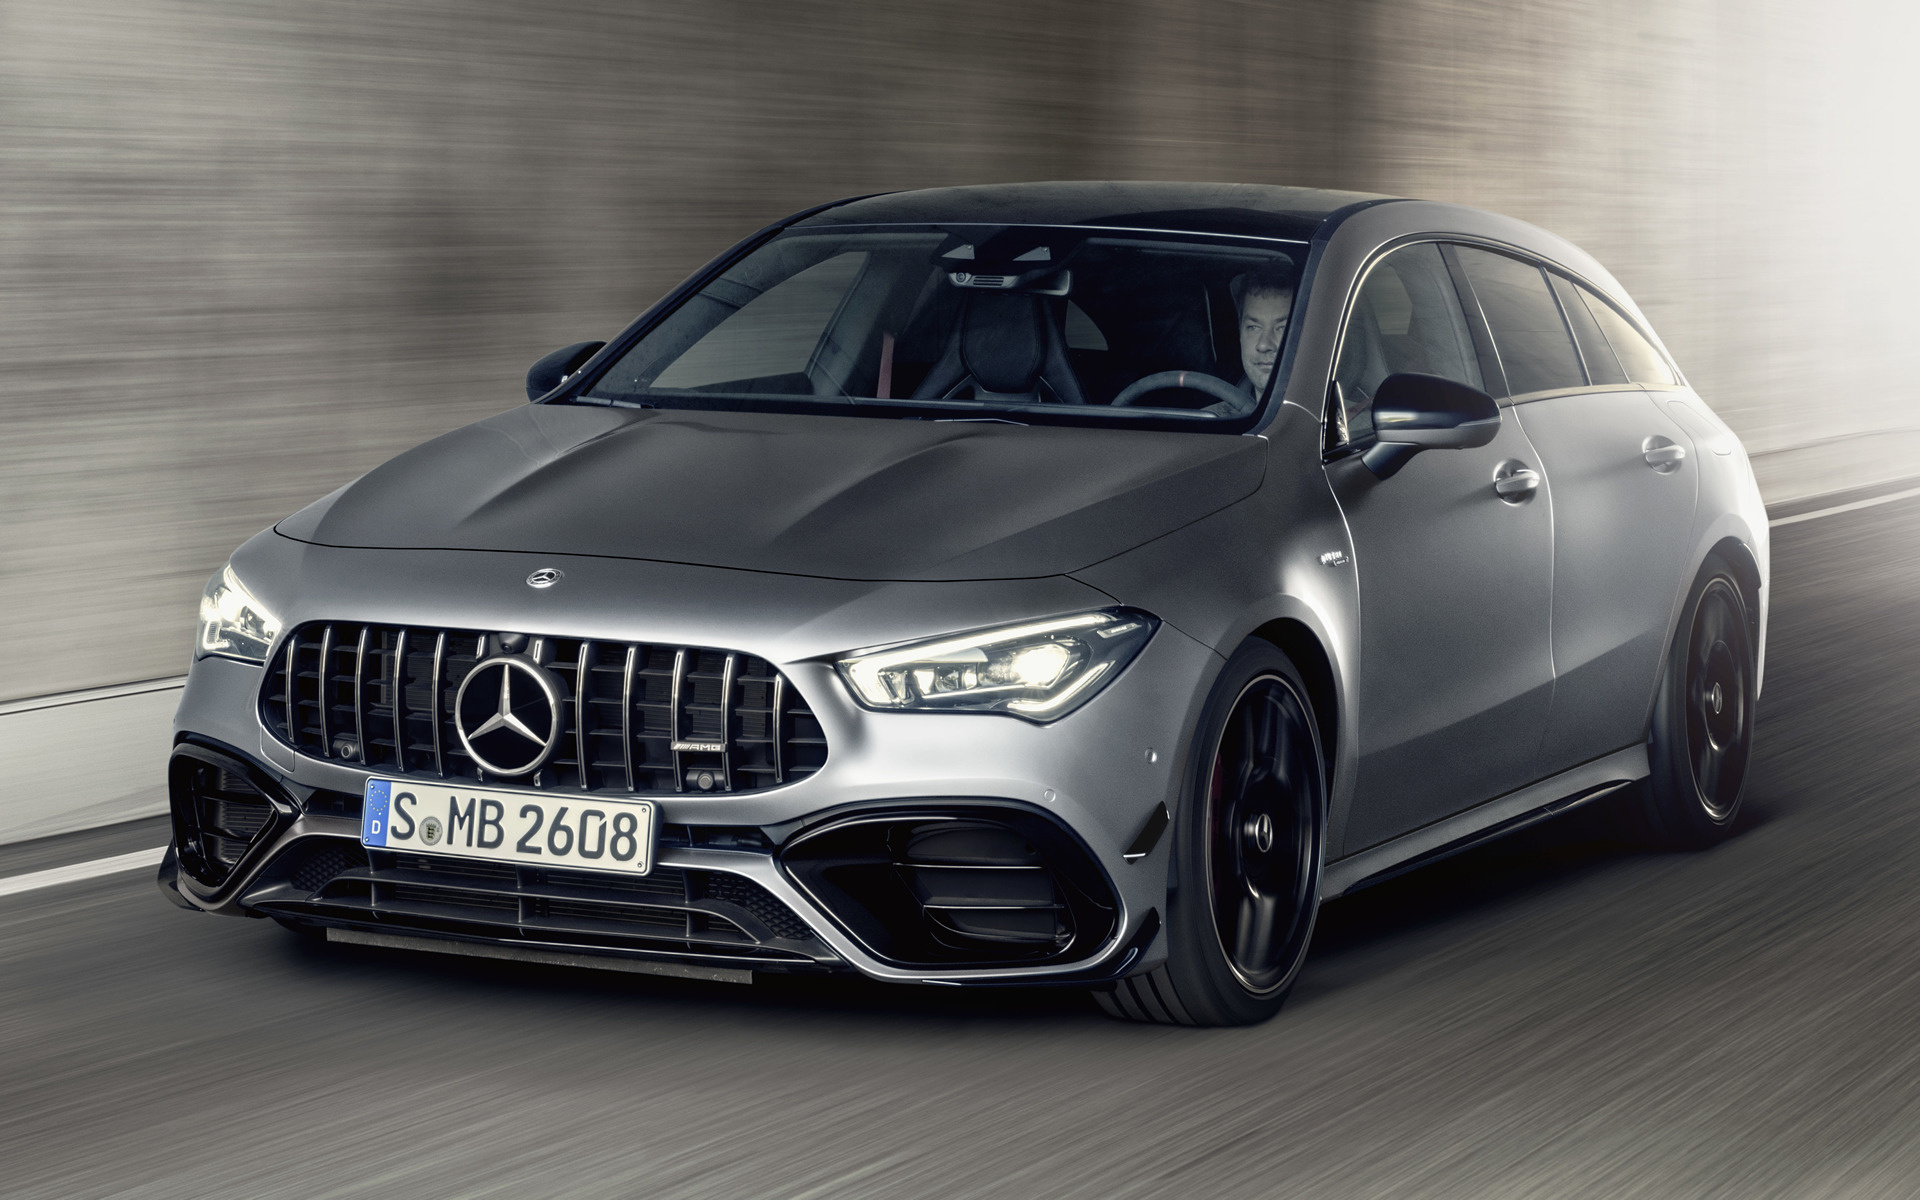 2019 Mercedes AMG CLA 45 S Shooting Brake Aerodynamics Package 1920x1200